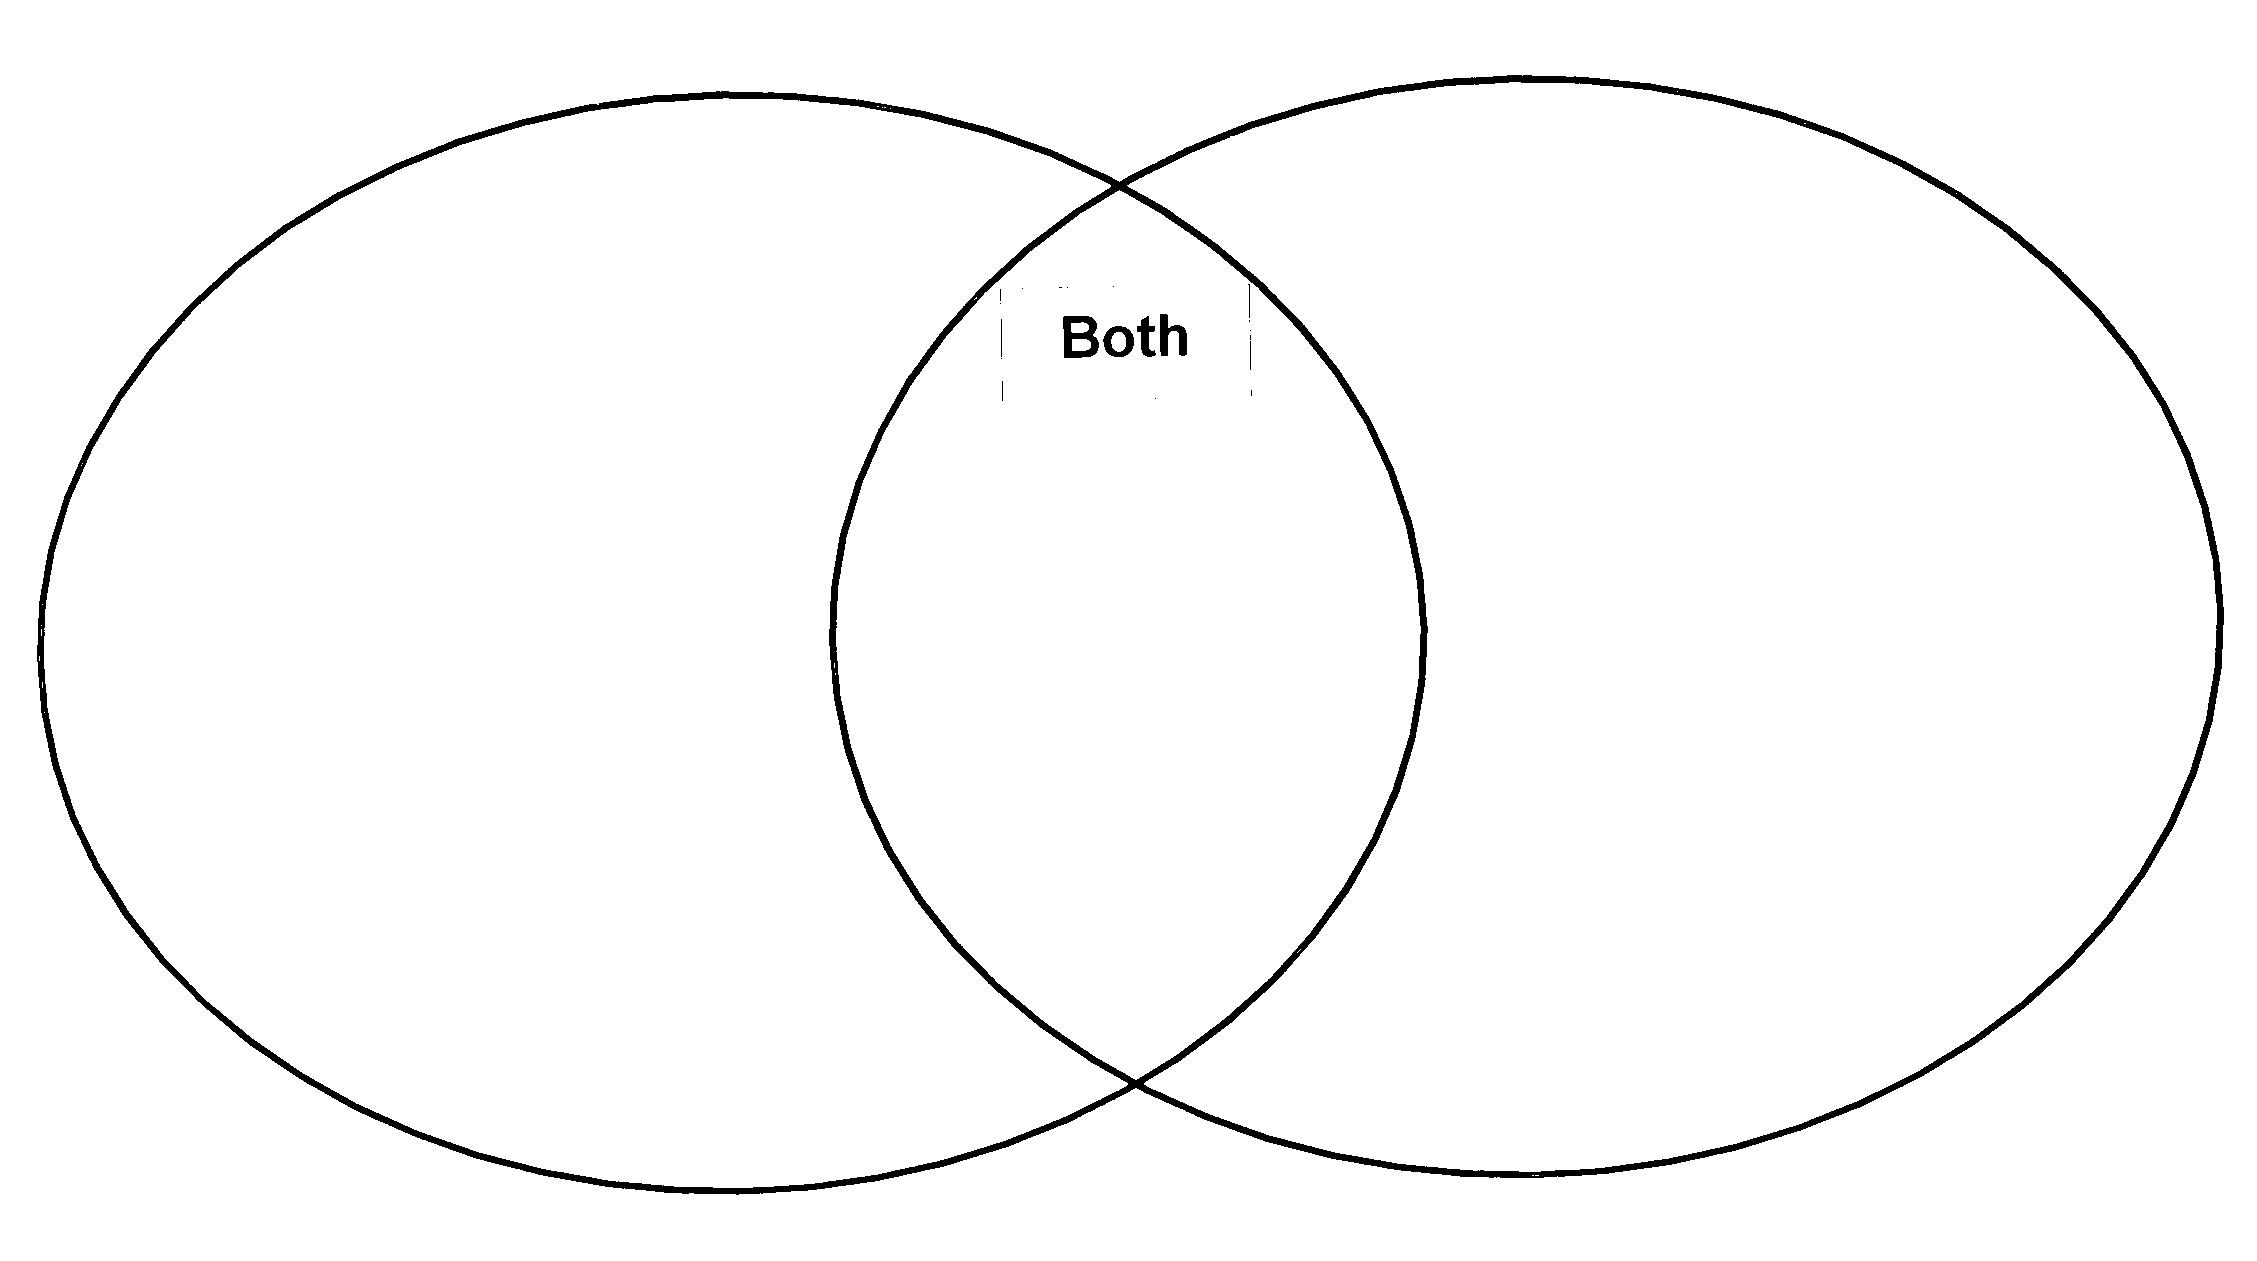 Venn Diagram To Compare And Contrast Images